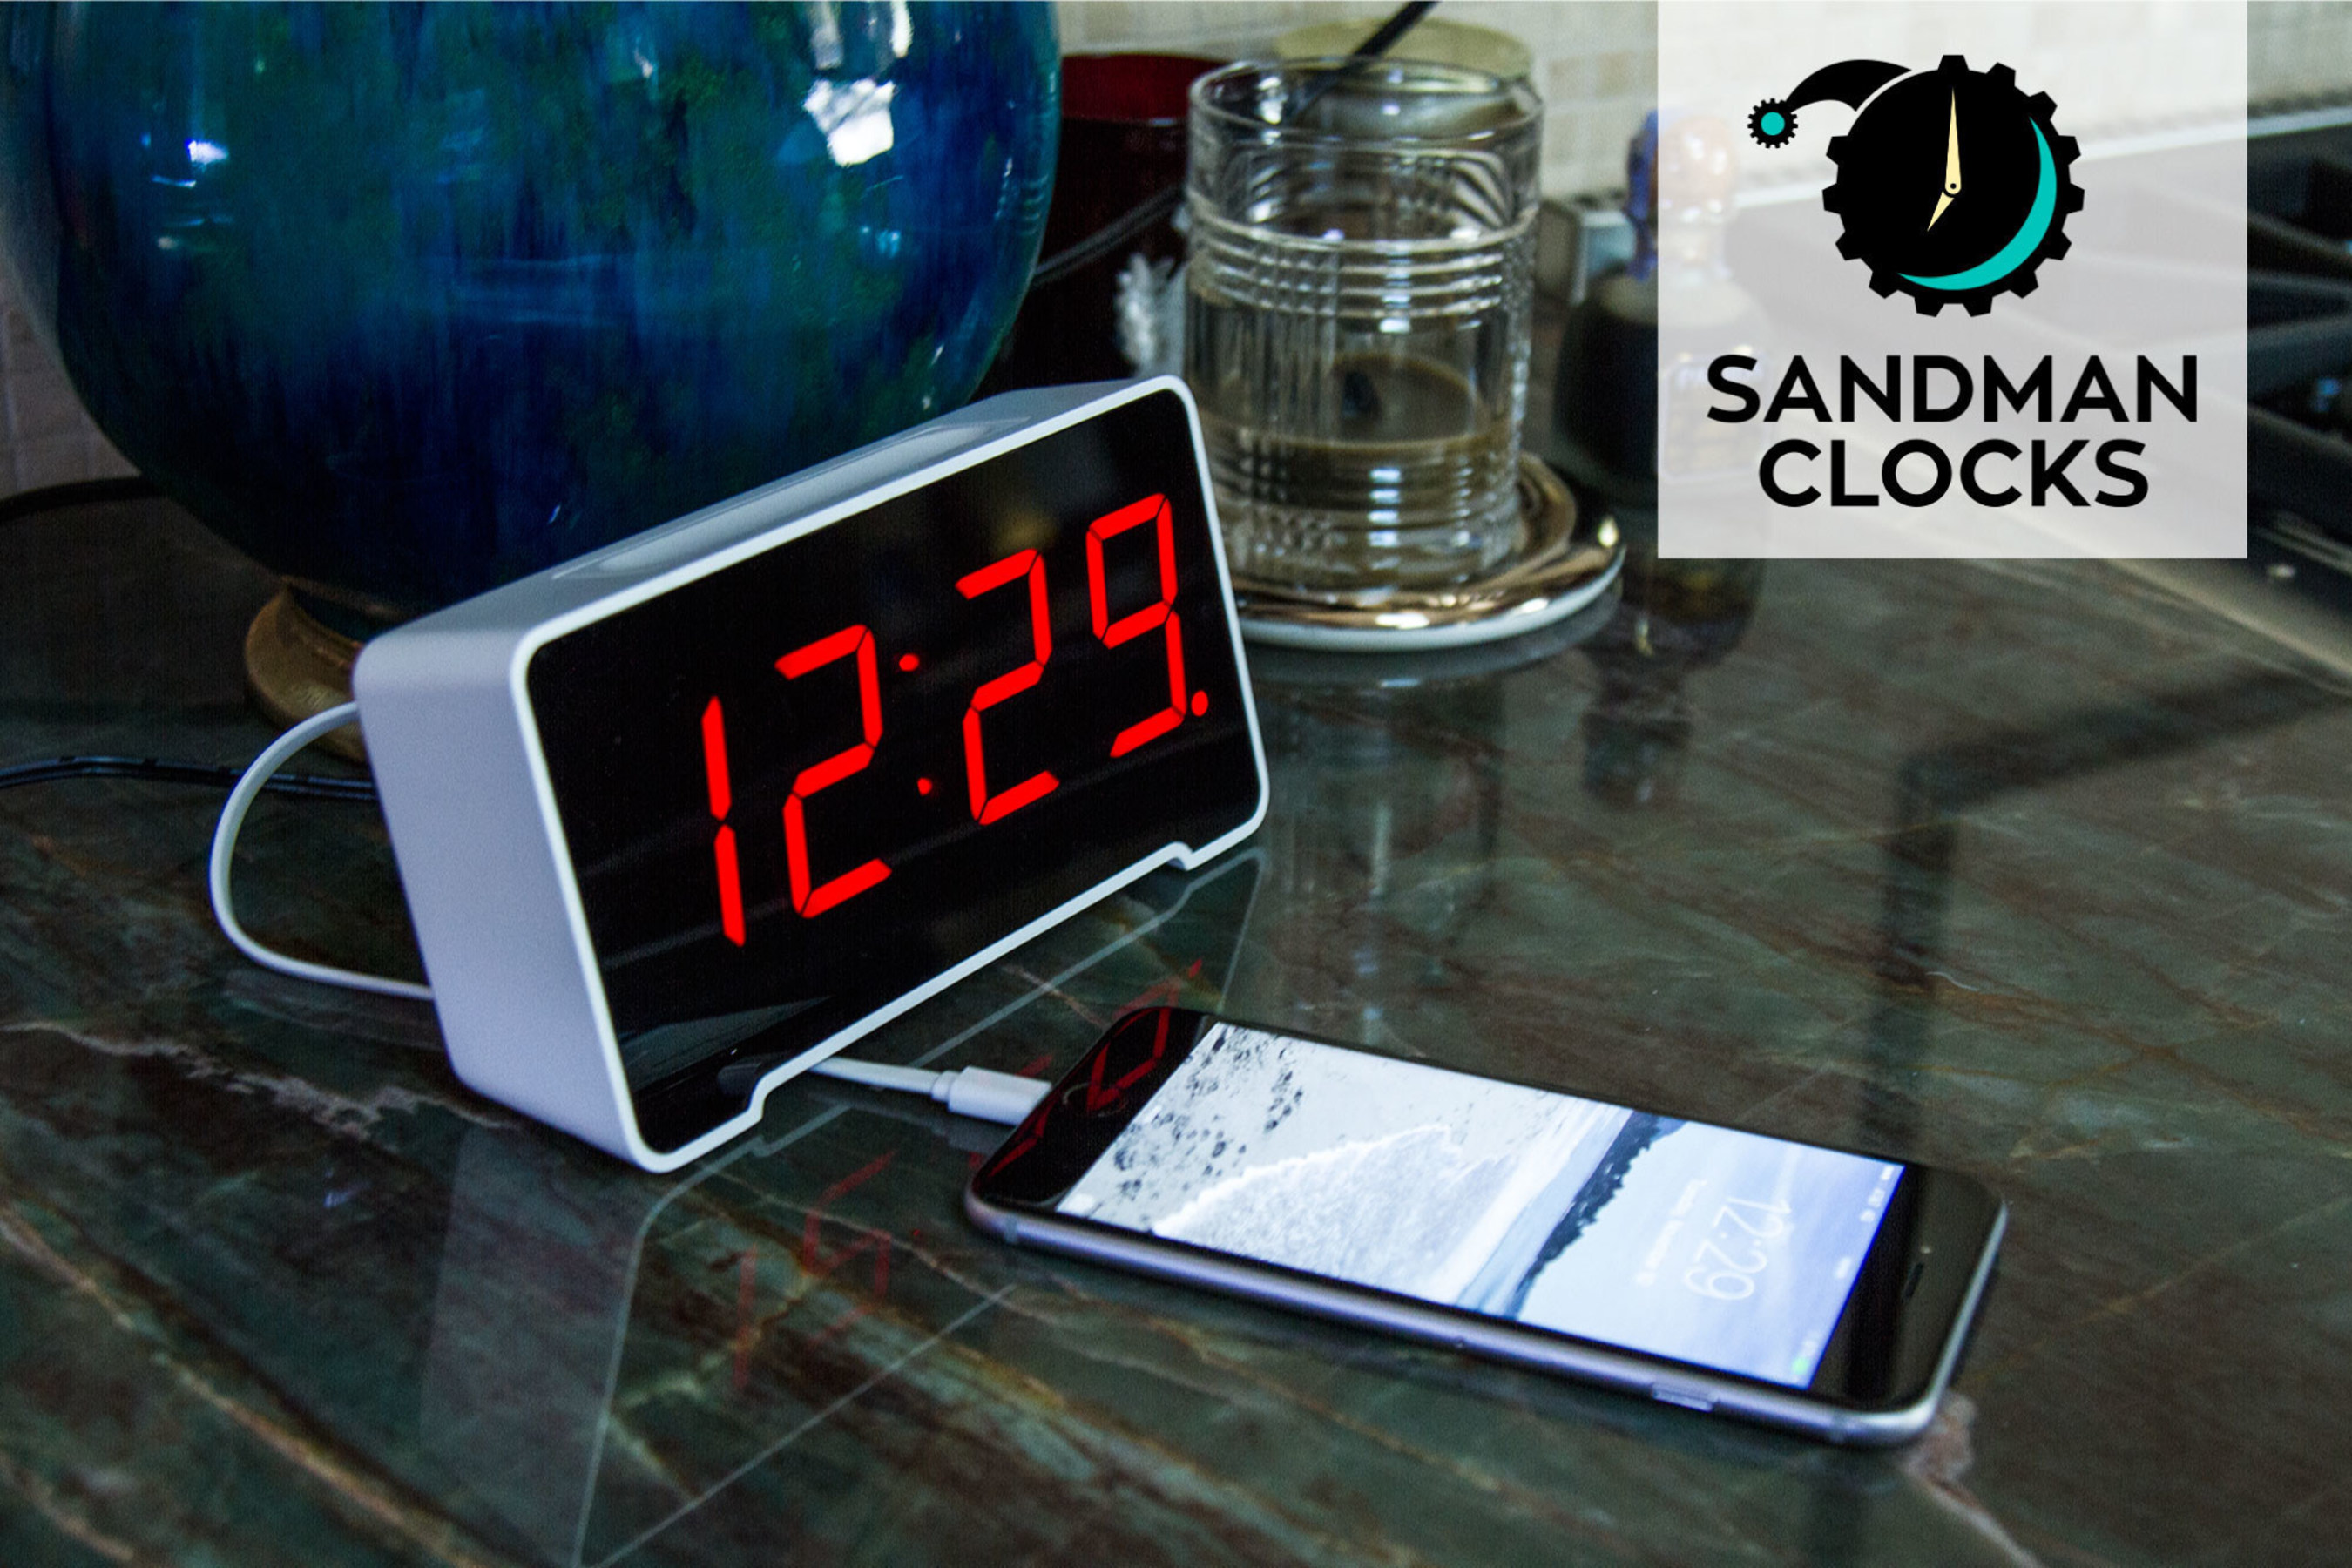 The Sandman Clock - The only alarm clock under $50 with integrated cable management and 4 USB charging ports - SandmanClocks.com